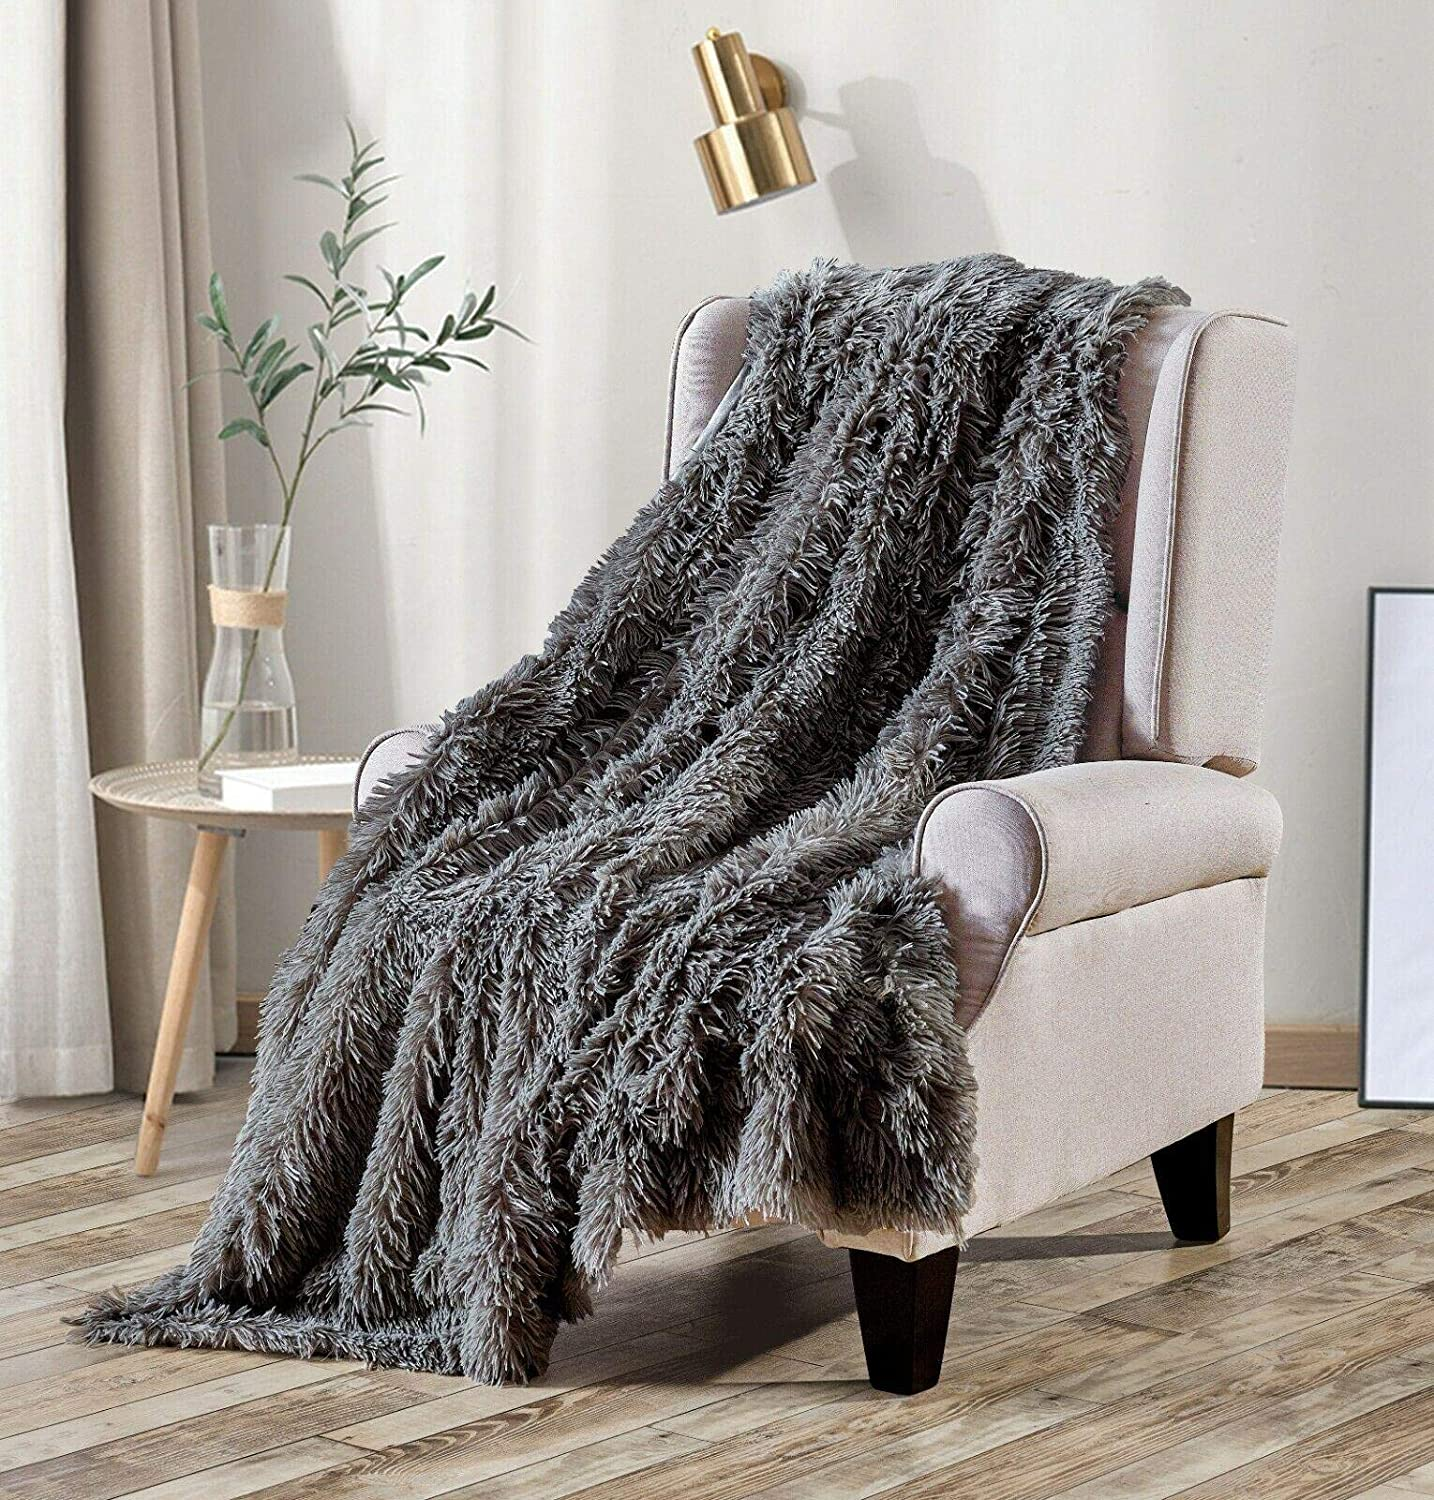 Long Shaggy Faux Super special price Fur Throw Blanket Fluffy Plush Re Furry Selling and selling